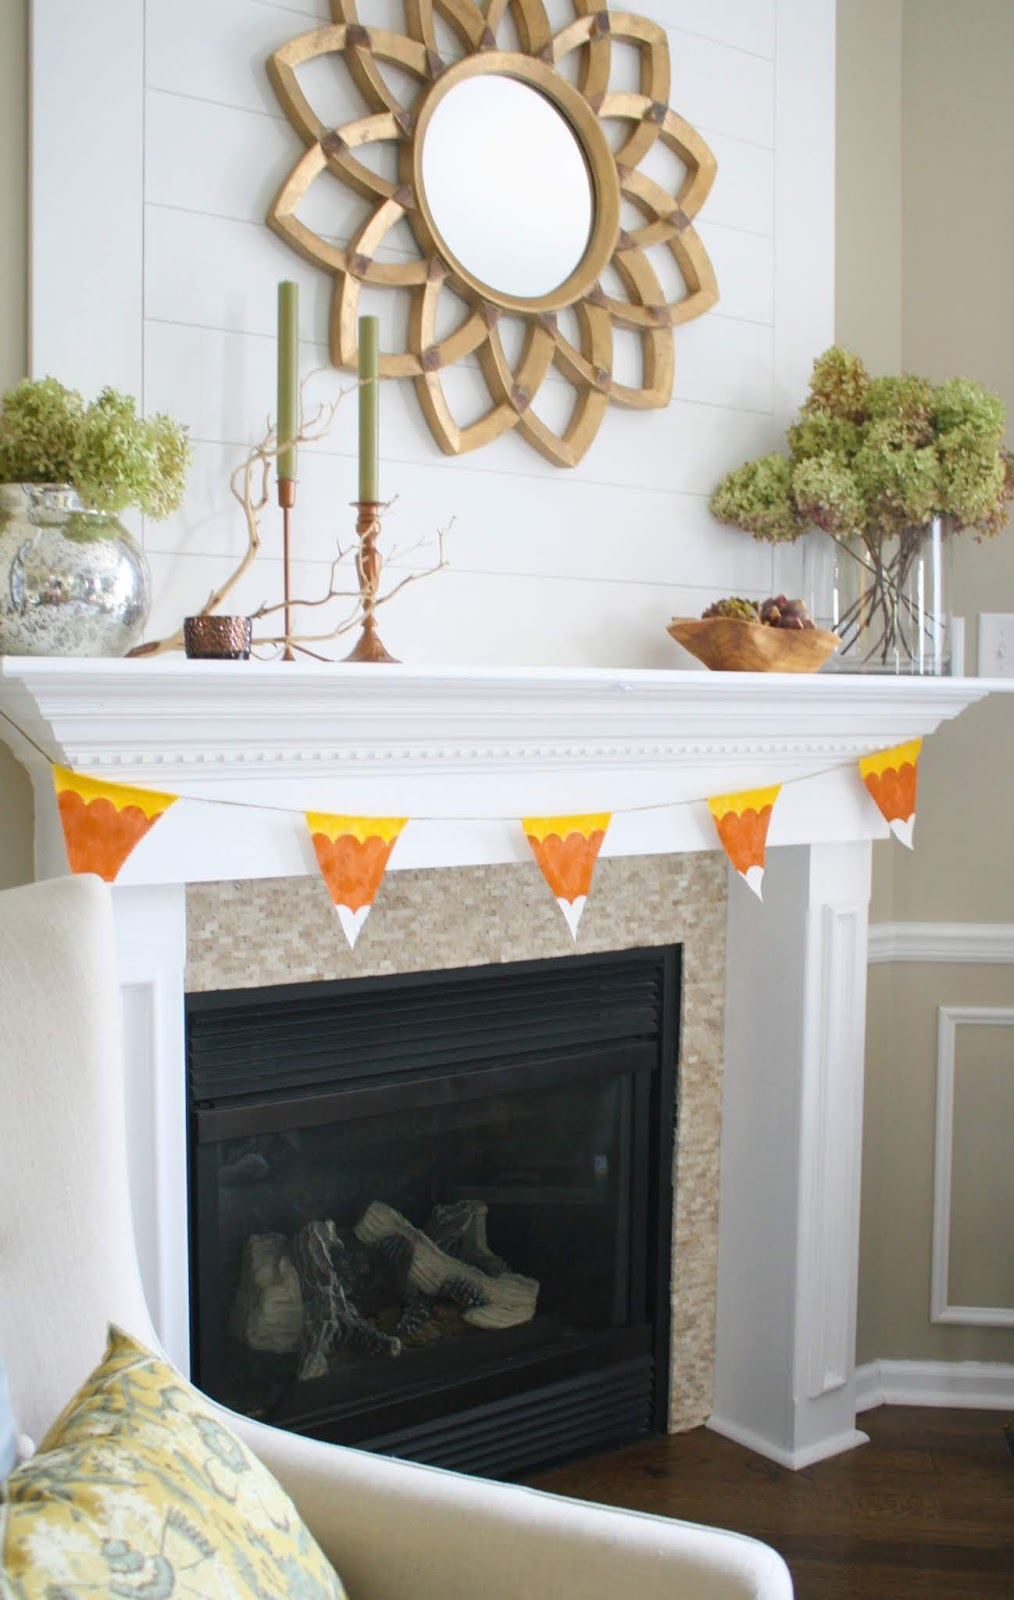 DIY candy corn bunting for fall